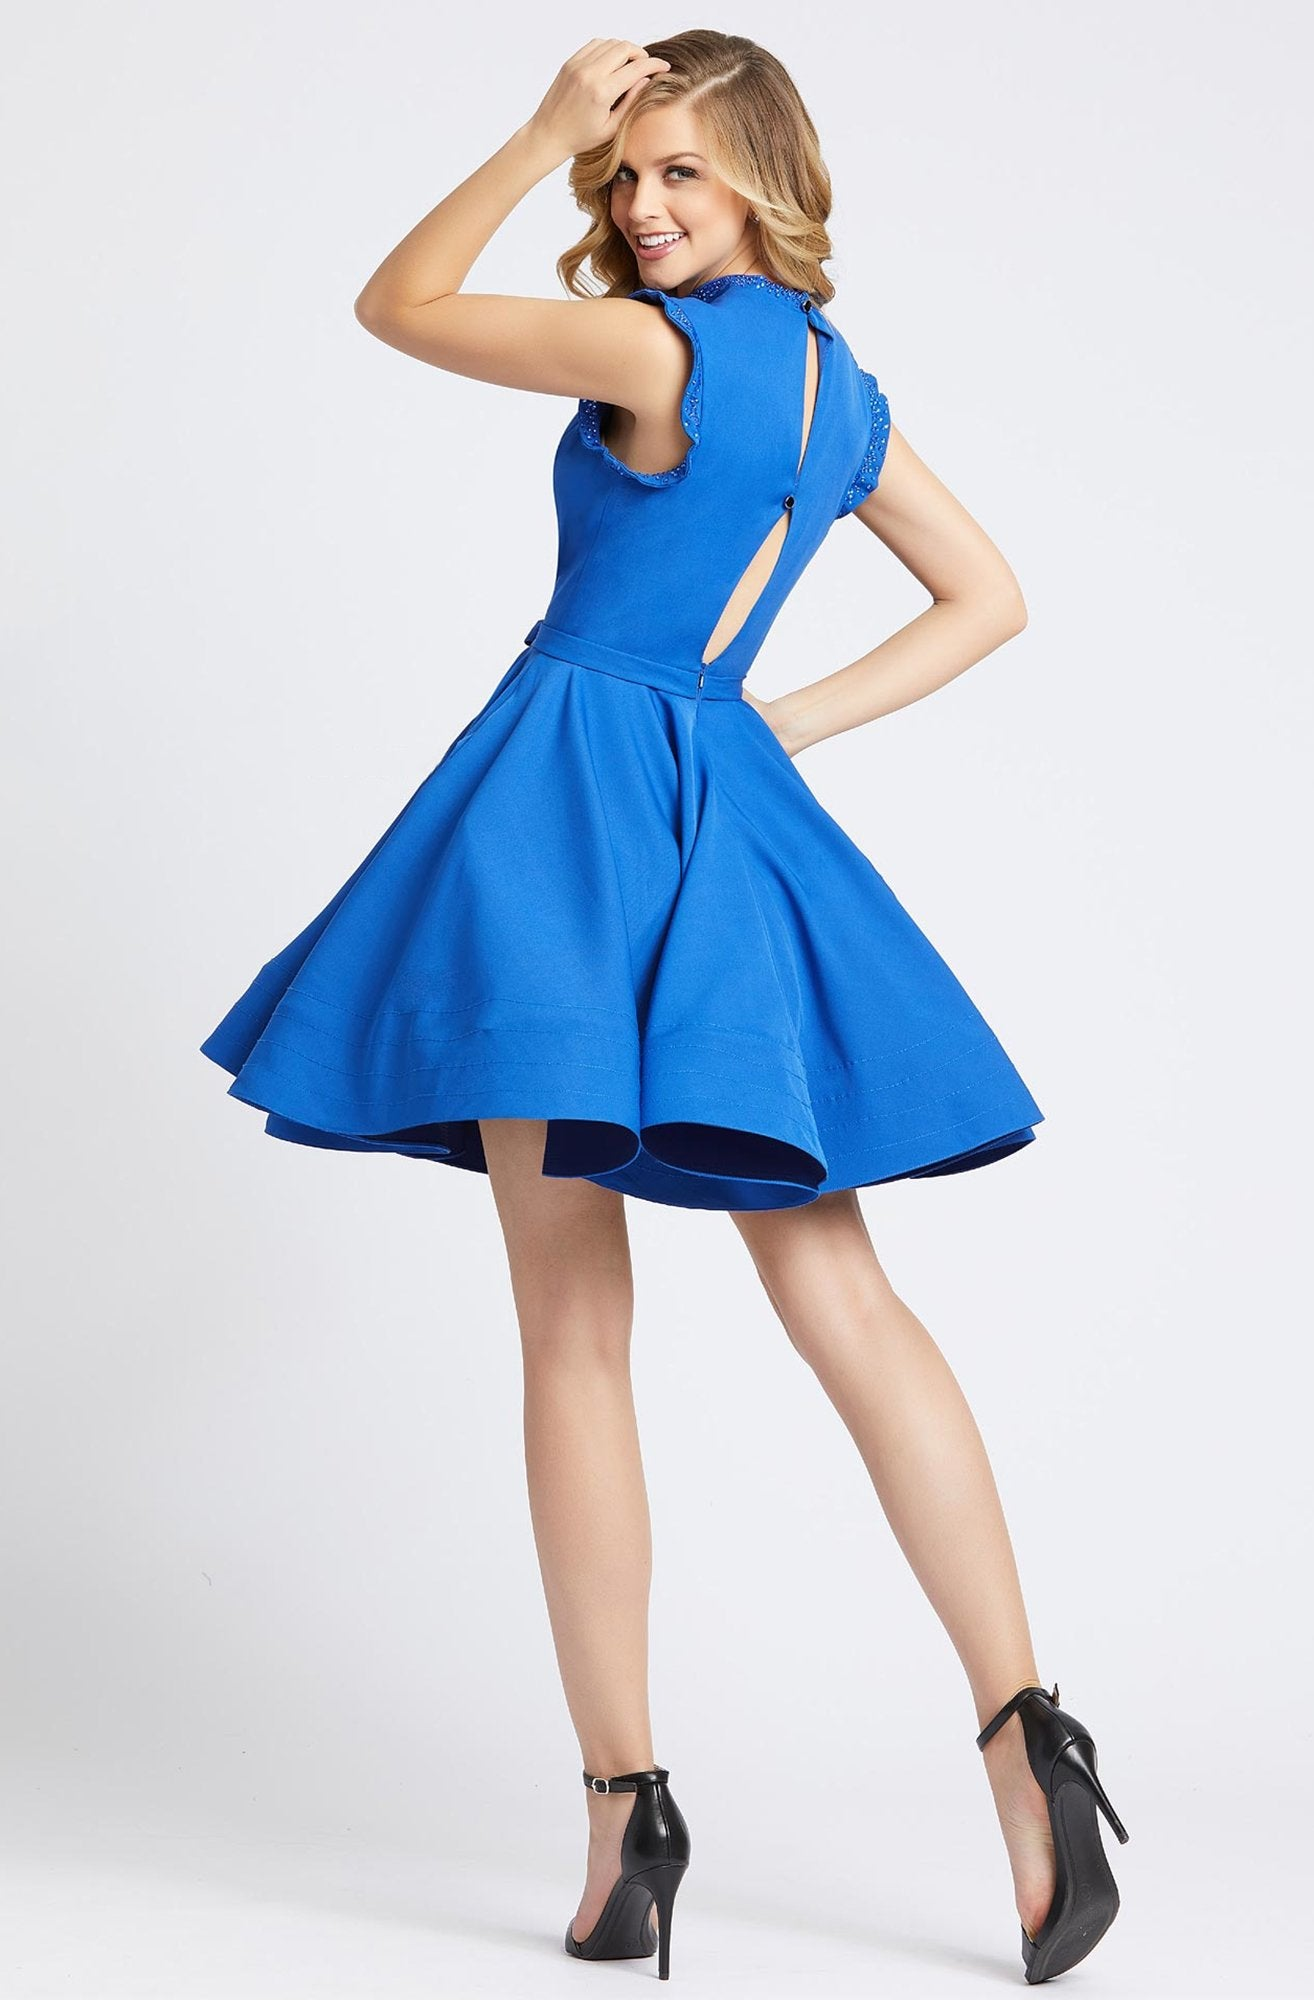 Ieena Duggal - 48772I Sleeveless Keyhole Style Back Cocktail Dress in Blue